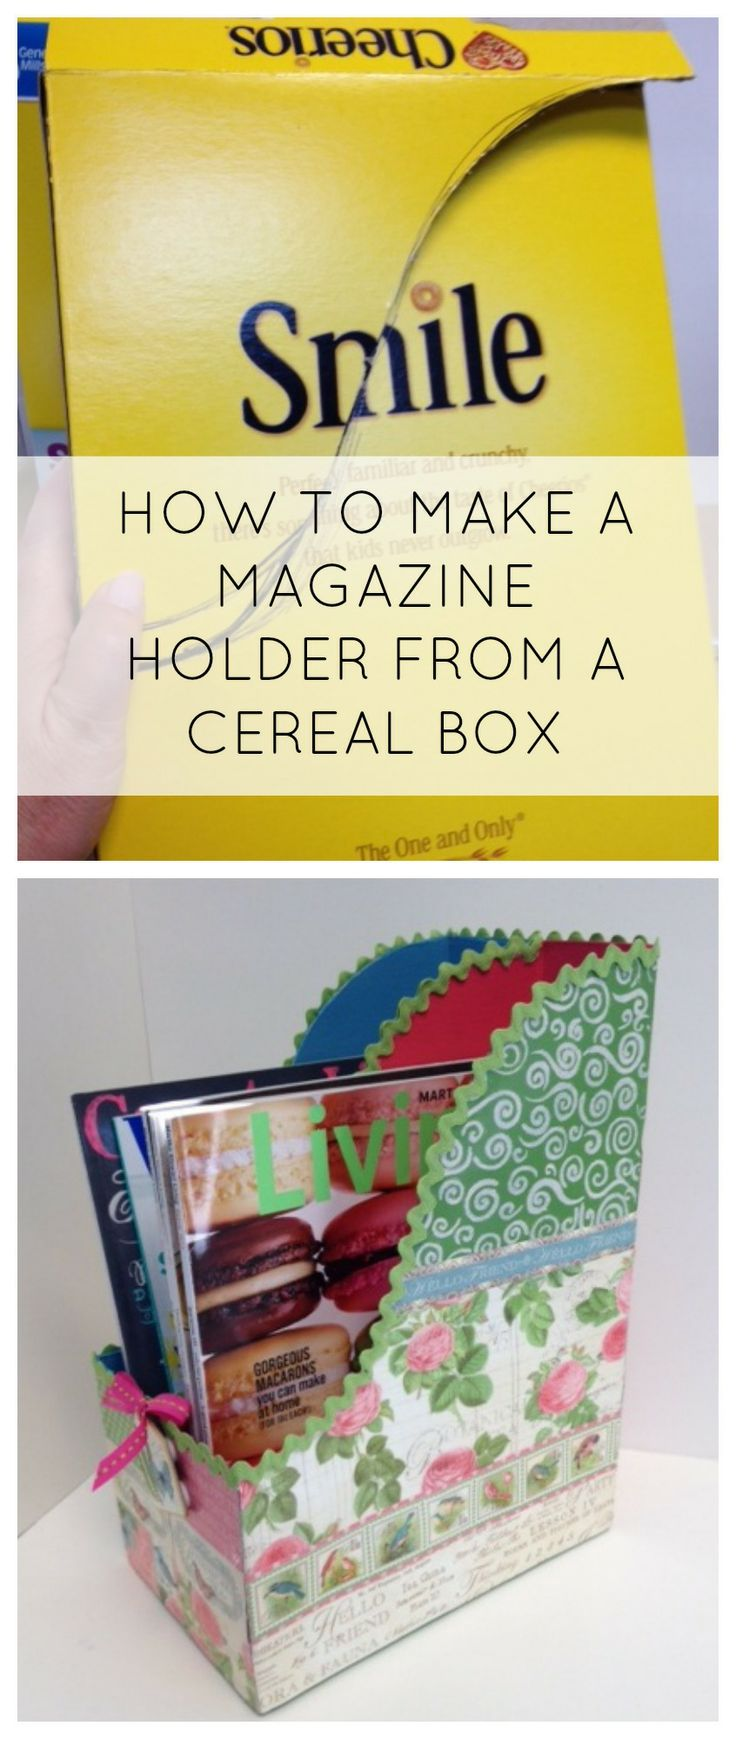 how to make a magazine holder from a cereal box - awesome way to recycle! #modpodge #plaidcrafts #diy #crafts